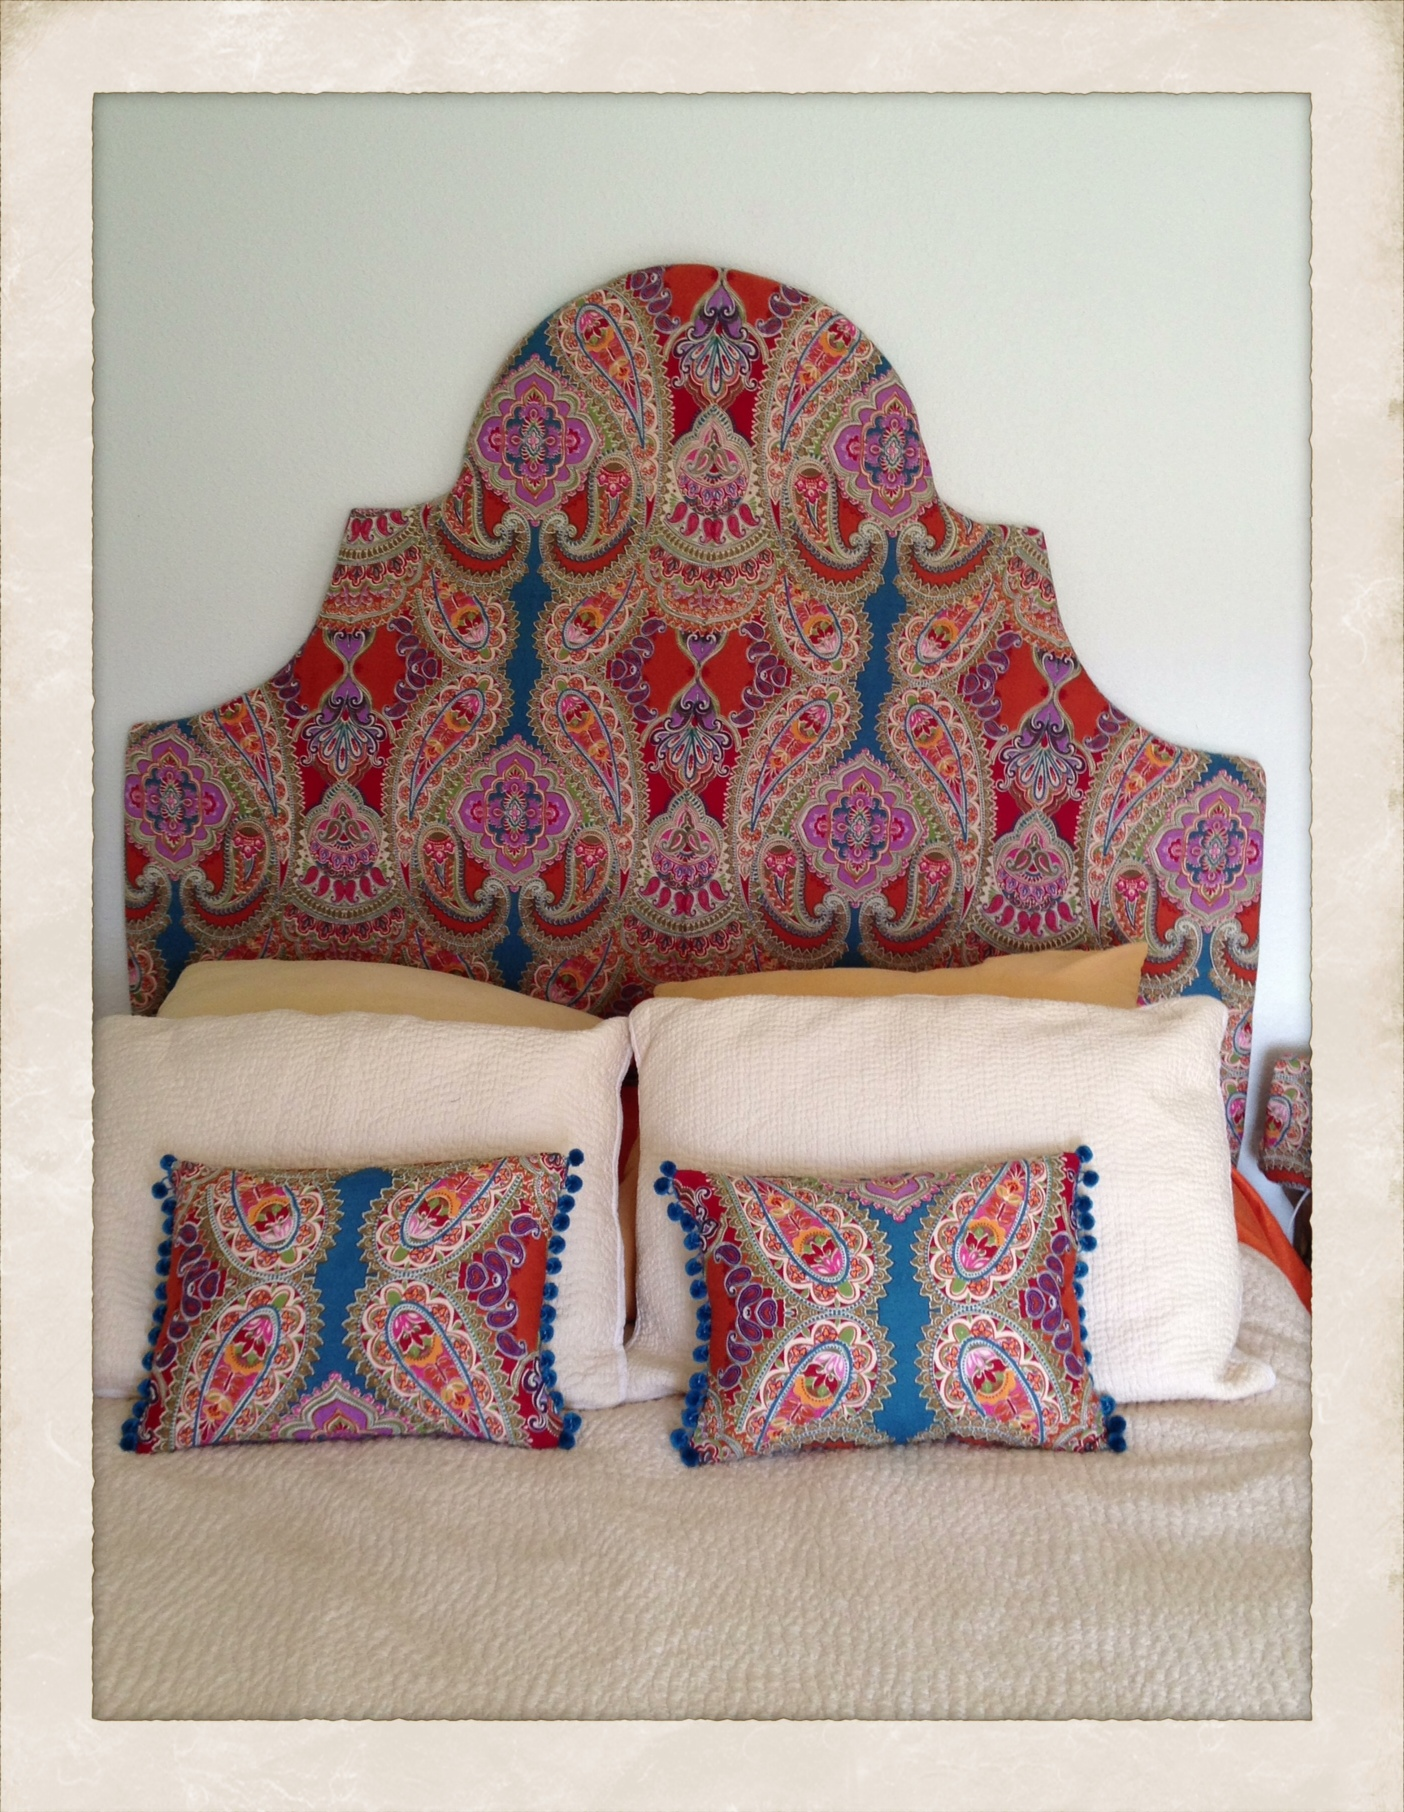 Headboard by Ande